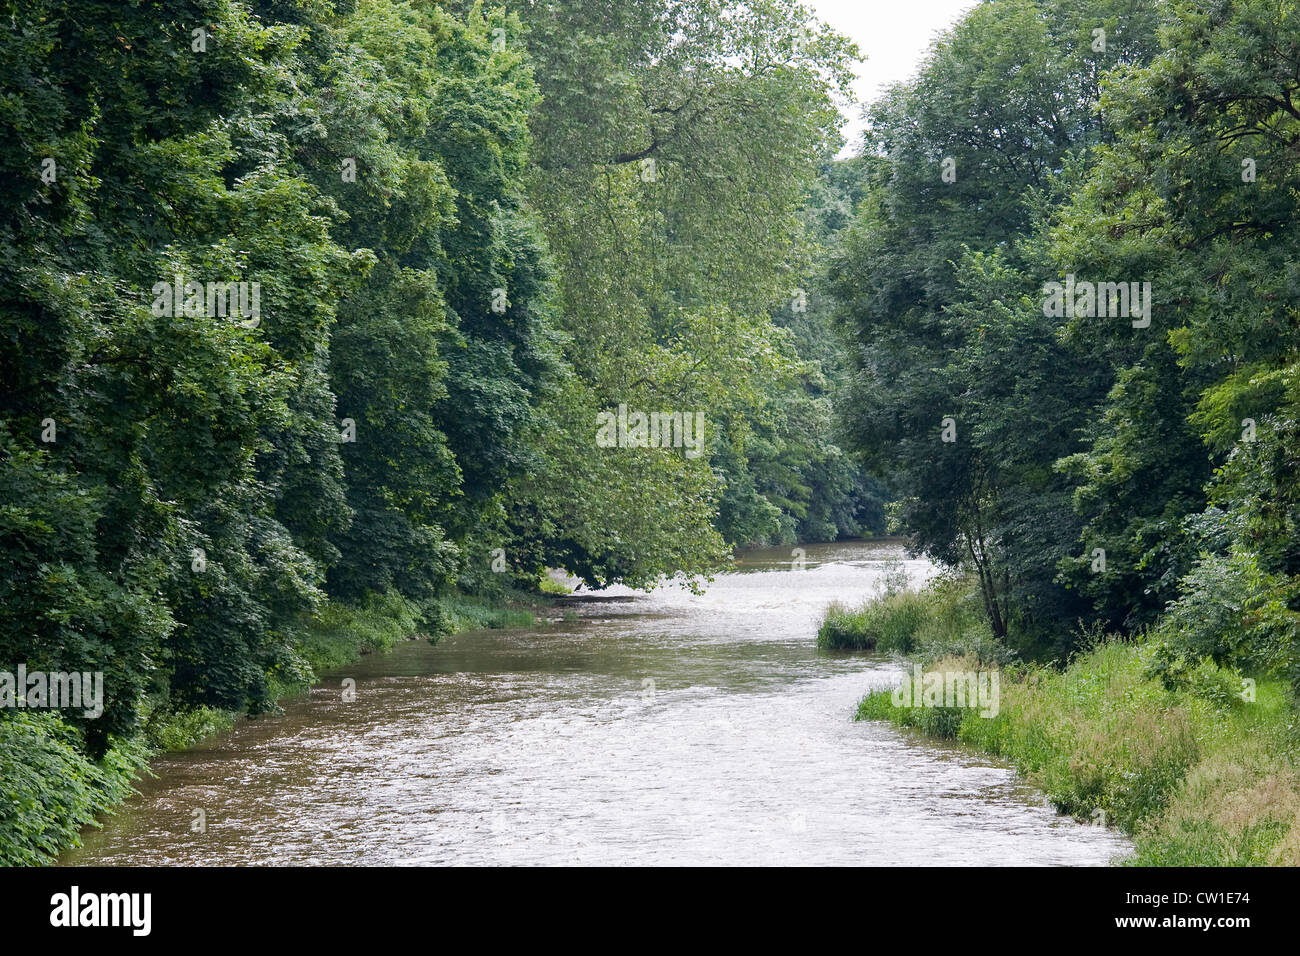 Europe, Germany, Rhineland, area of Bonn, district of Ahrweiler, Bad Neuenahr, the stream Ahr - Stock Image